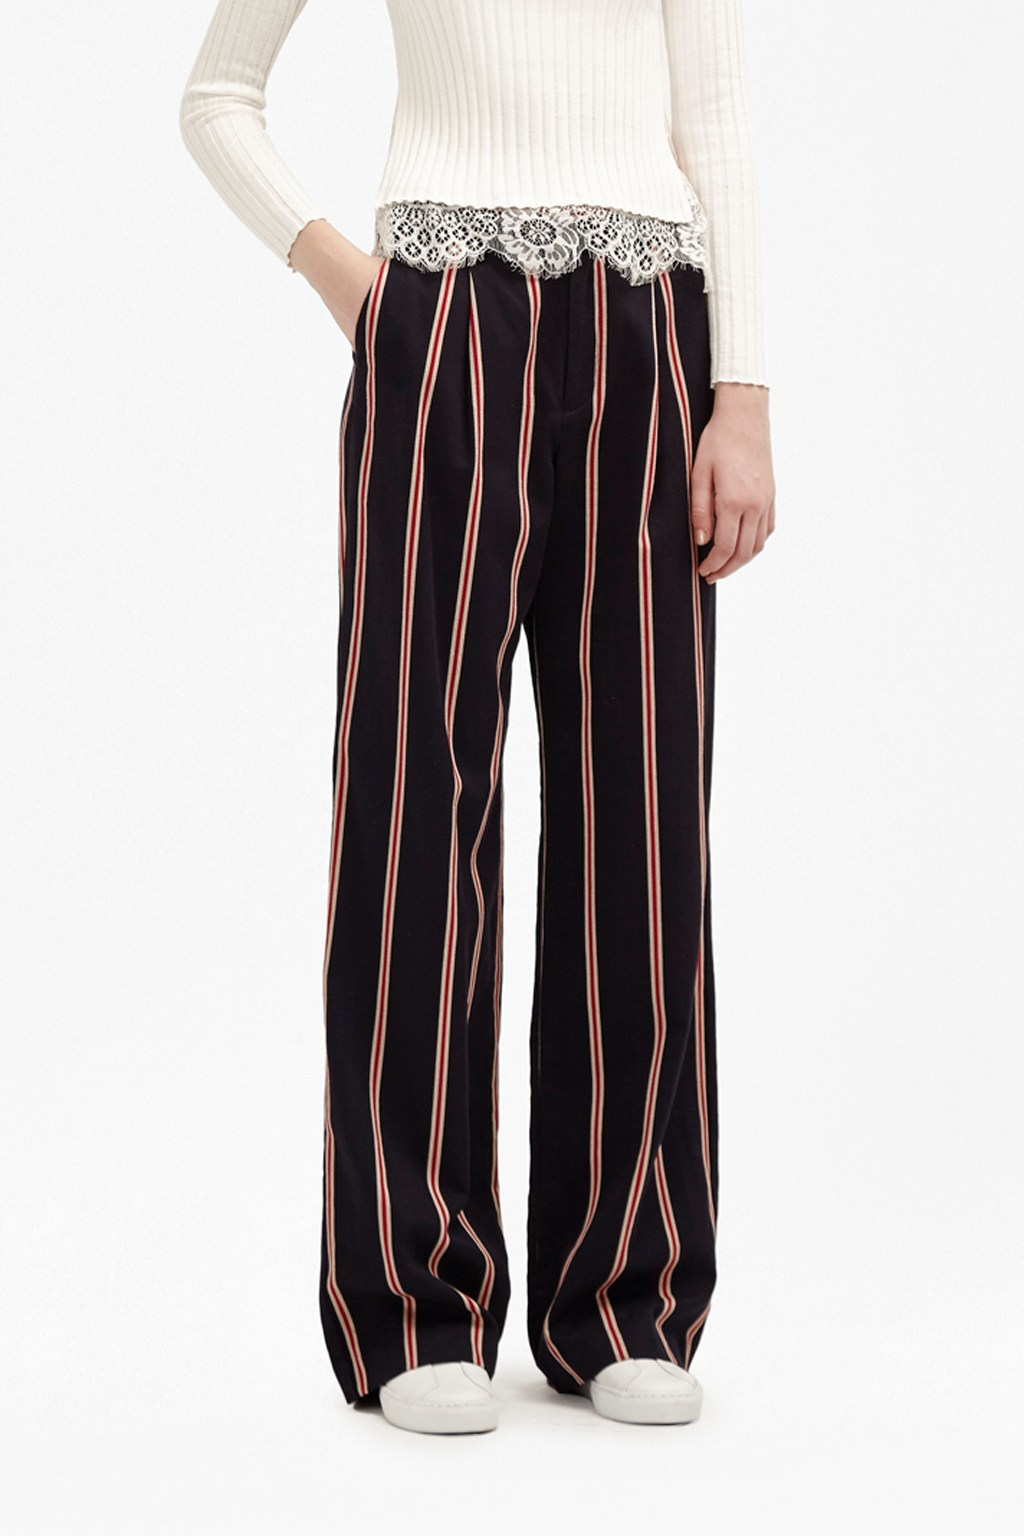 Freddy Stripe Coord Wide Leg Trousers Indigo/Cream/Red - length: standard; pattern: vertical stripes; waist: mid/regular rise; secondary colour: true red; predominant colour: black; occasions: casual, creative work; fibres: polyester/polyamide - 100%; texture group: crepes; fit: wide leg; pattern type: fabric; style: standard; season: a/w 2016; wardrobe: highlight